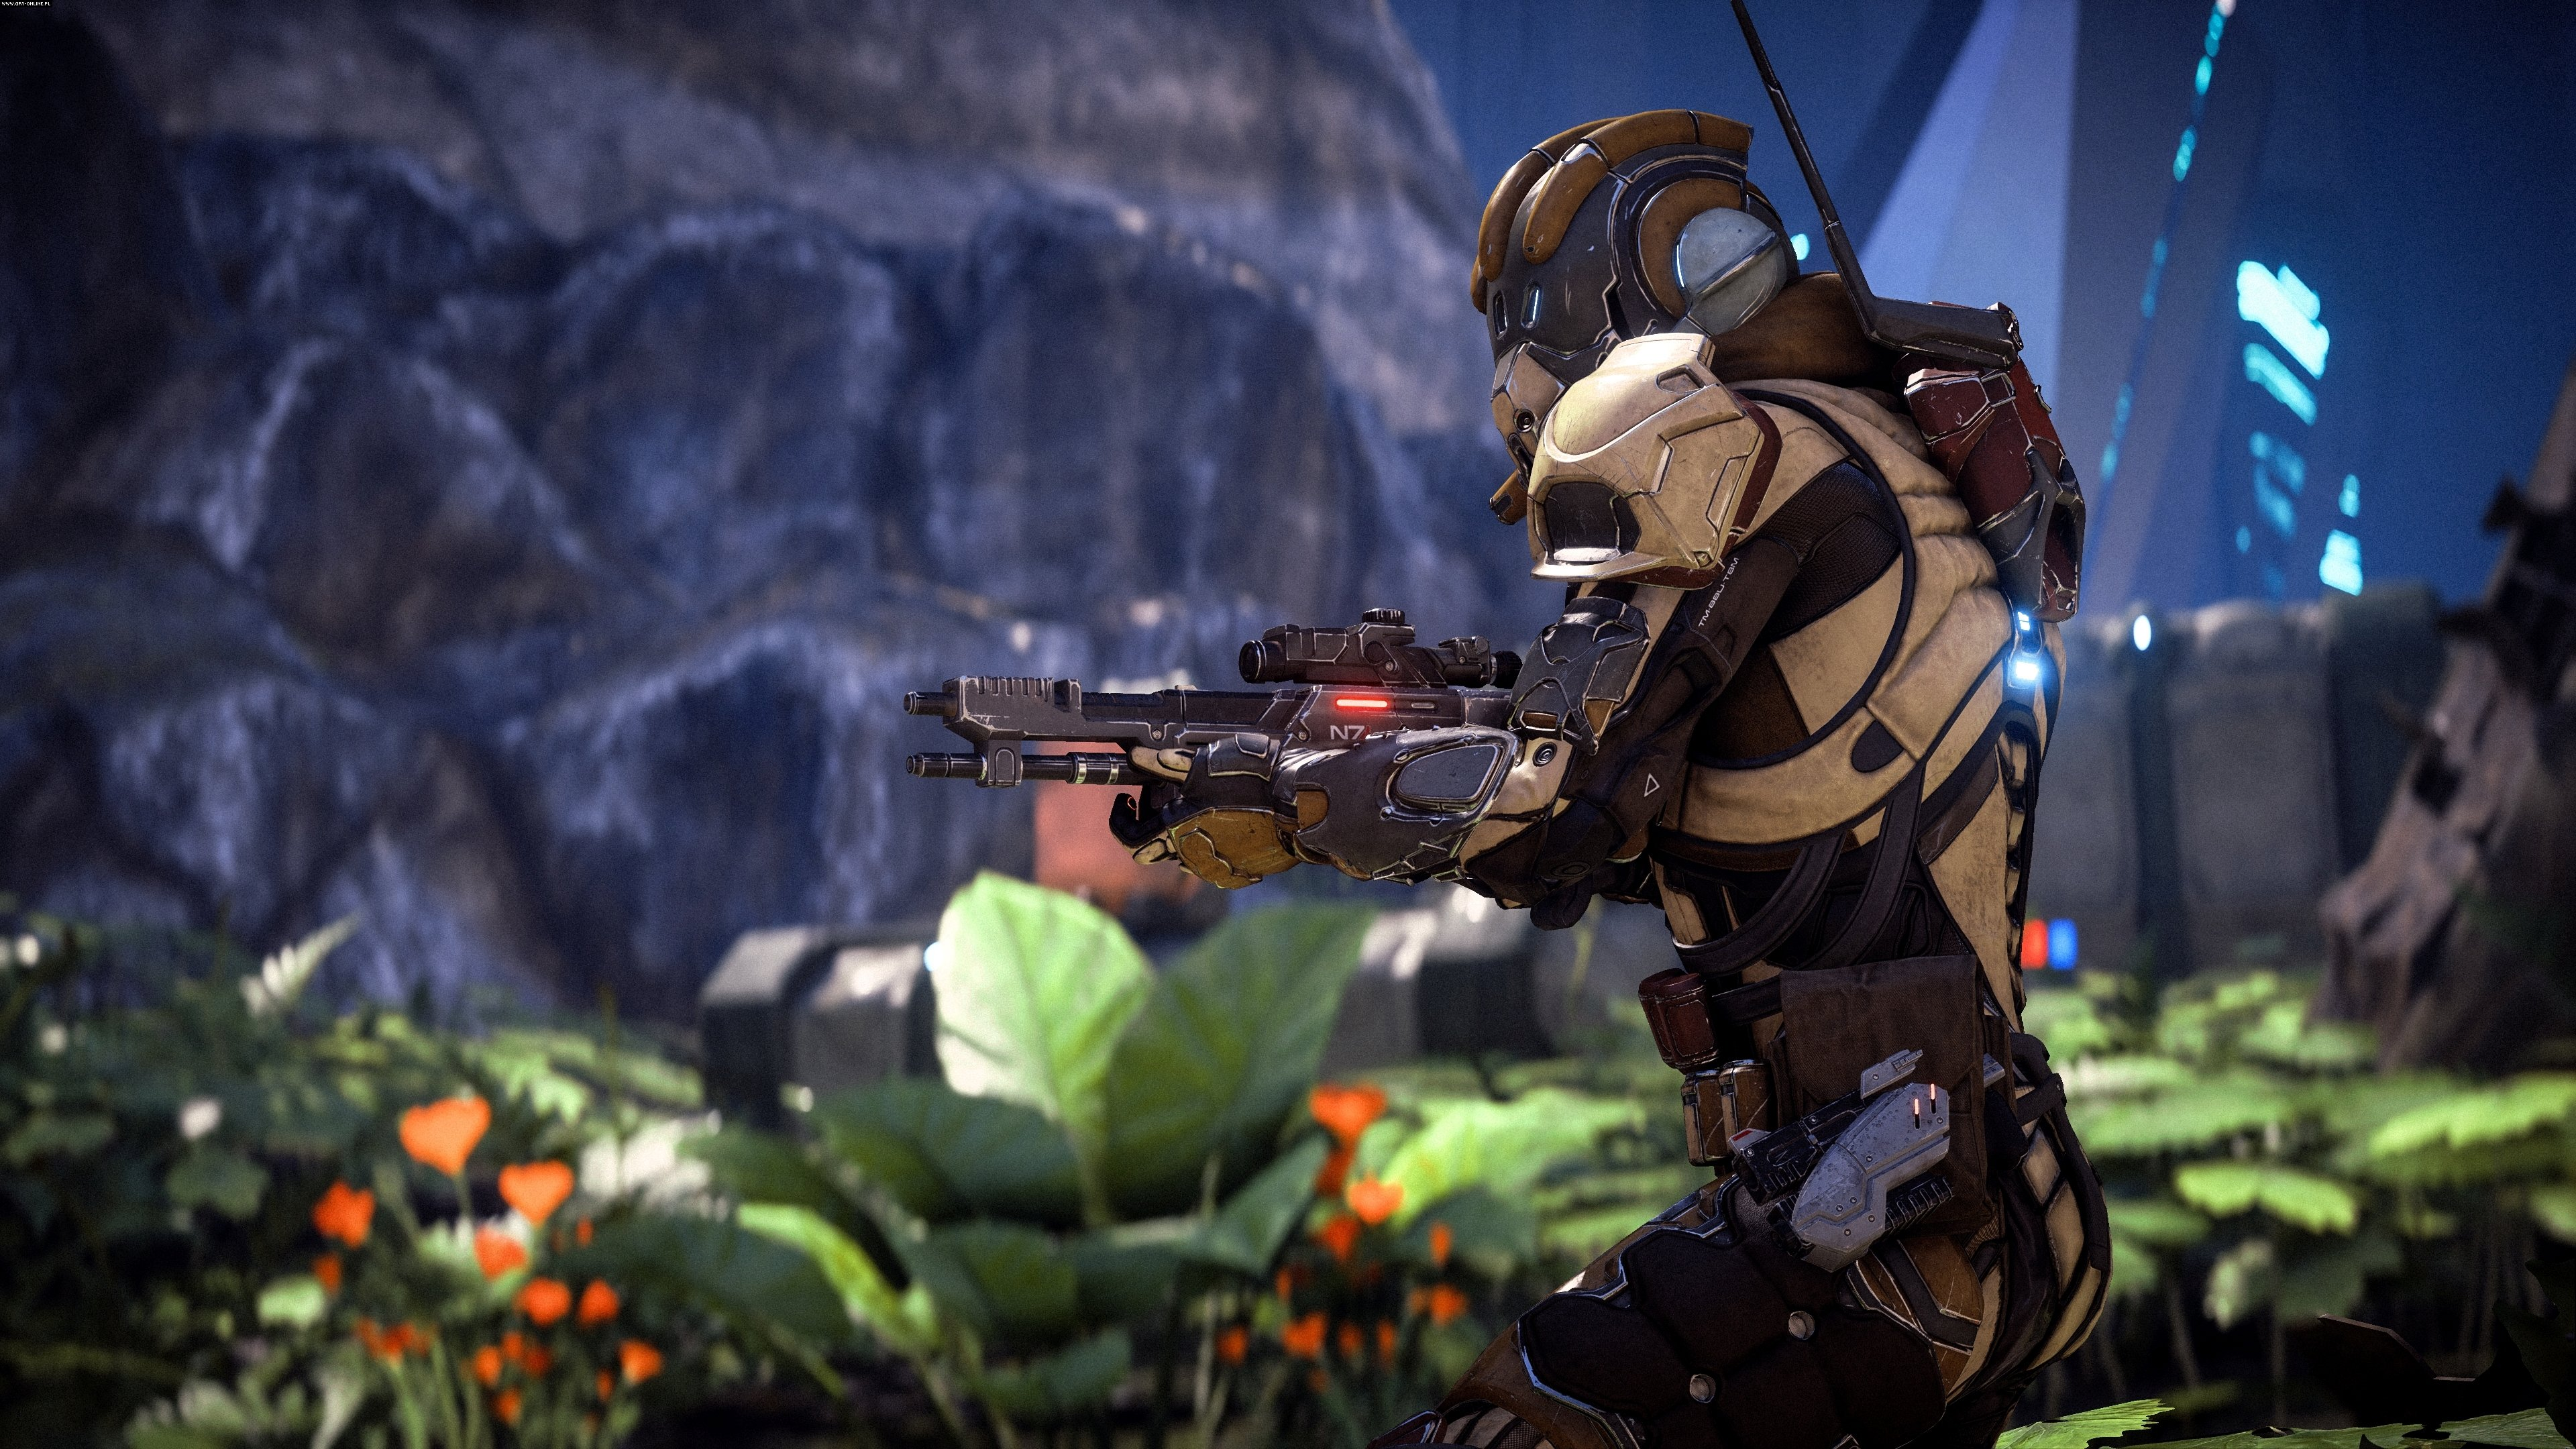 Mass Effect: Andromeda PC, PS4 Gry Screen 8/140, BioWare Corporation, Electronic Arts Inc.